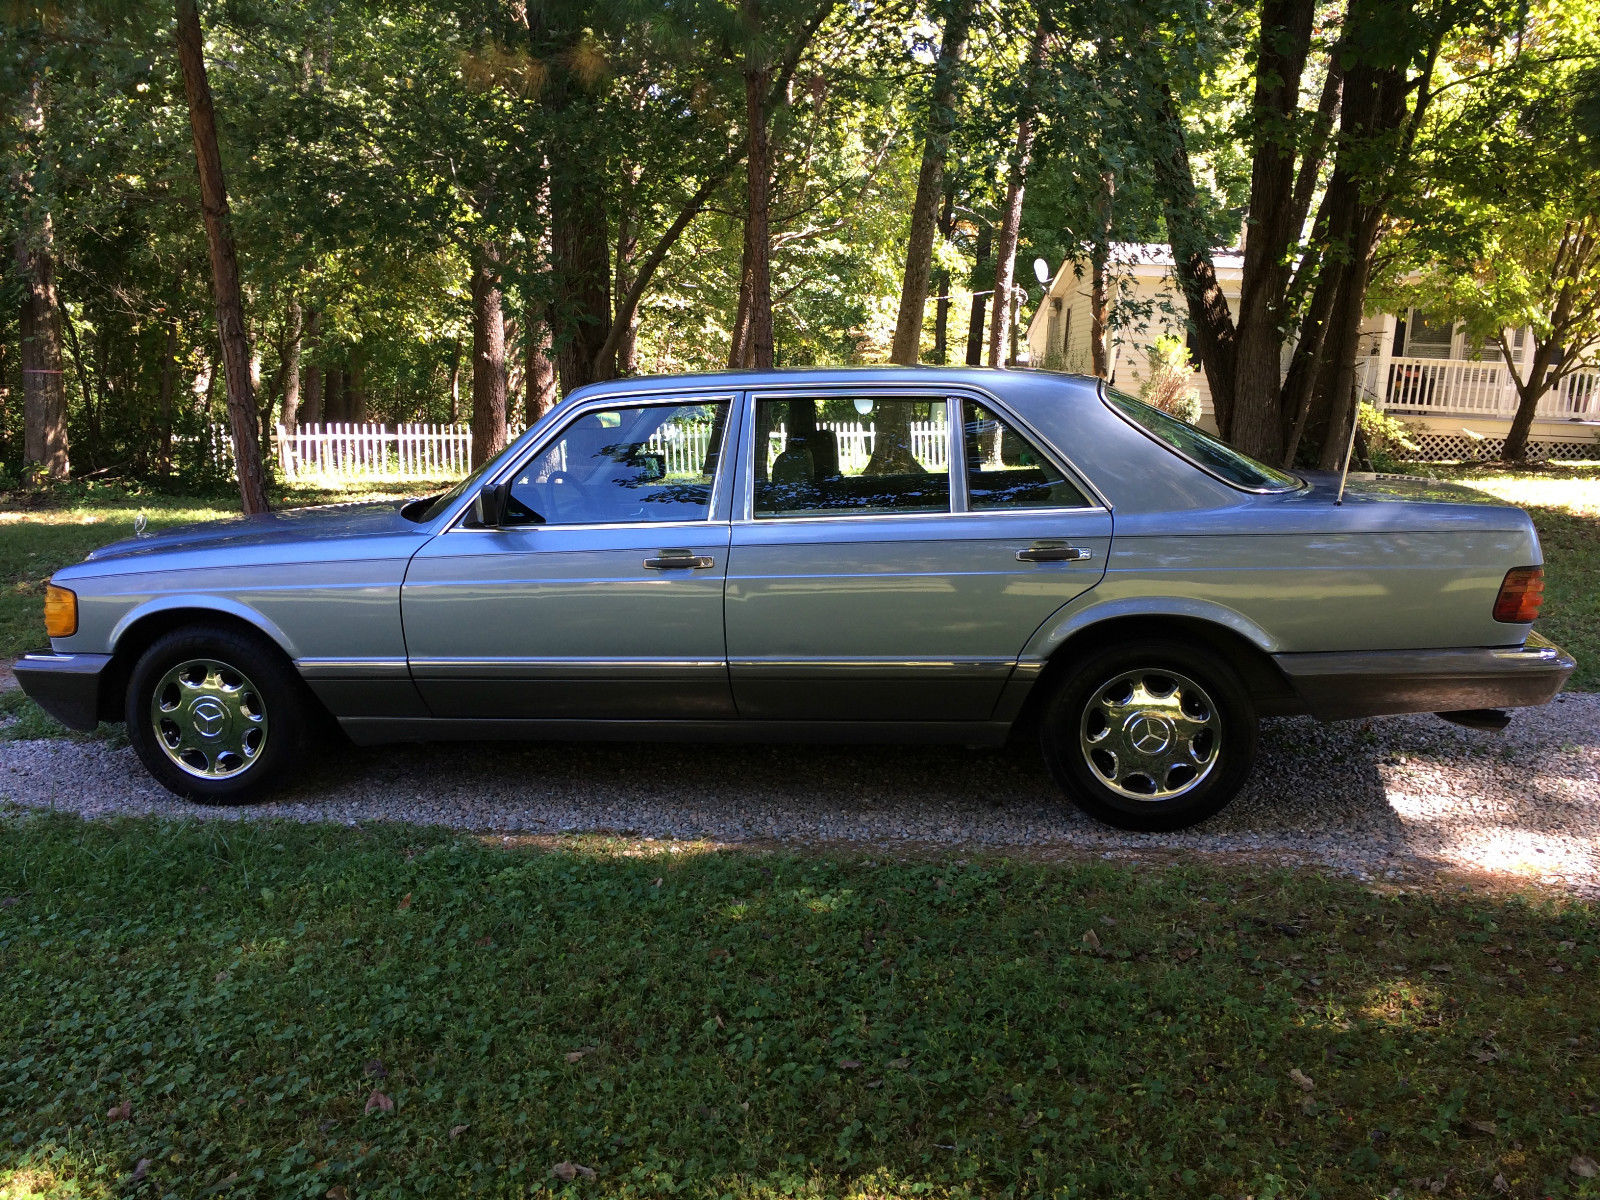 1987 Mercedes 300 Sdl Turbo Diesel Well Maintained Excellent 300sdl Fuel Filter Condition For Sale In Midlothian Virginia United States